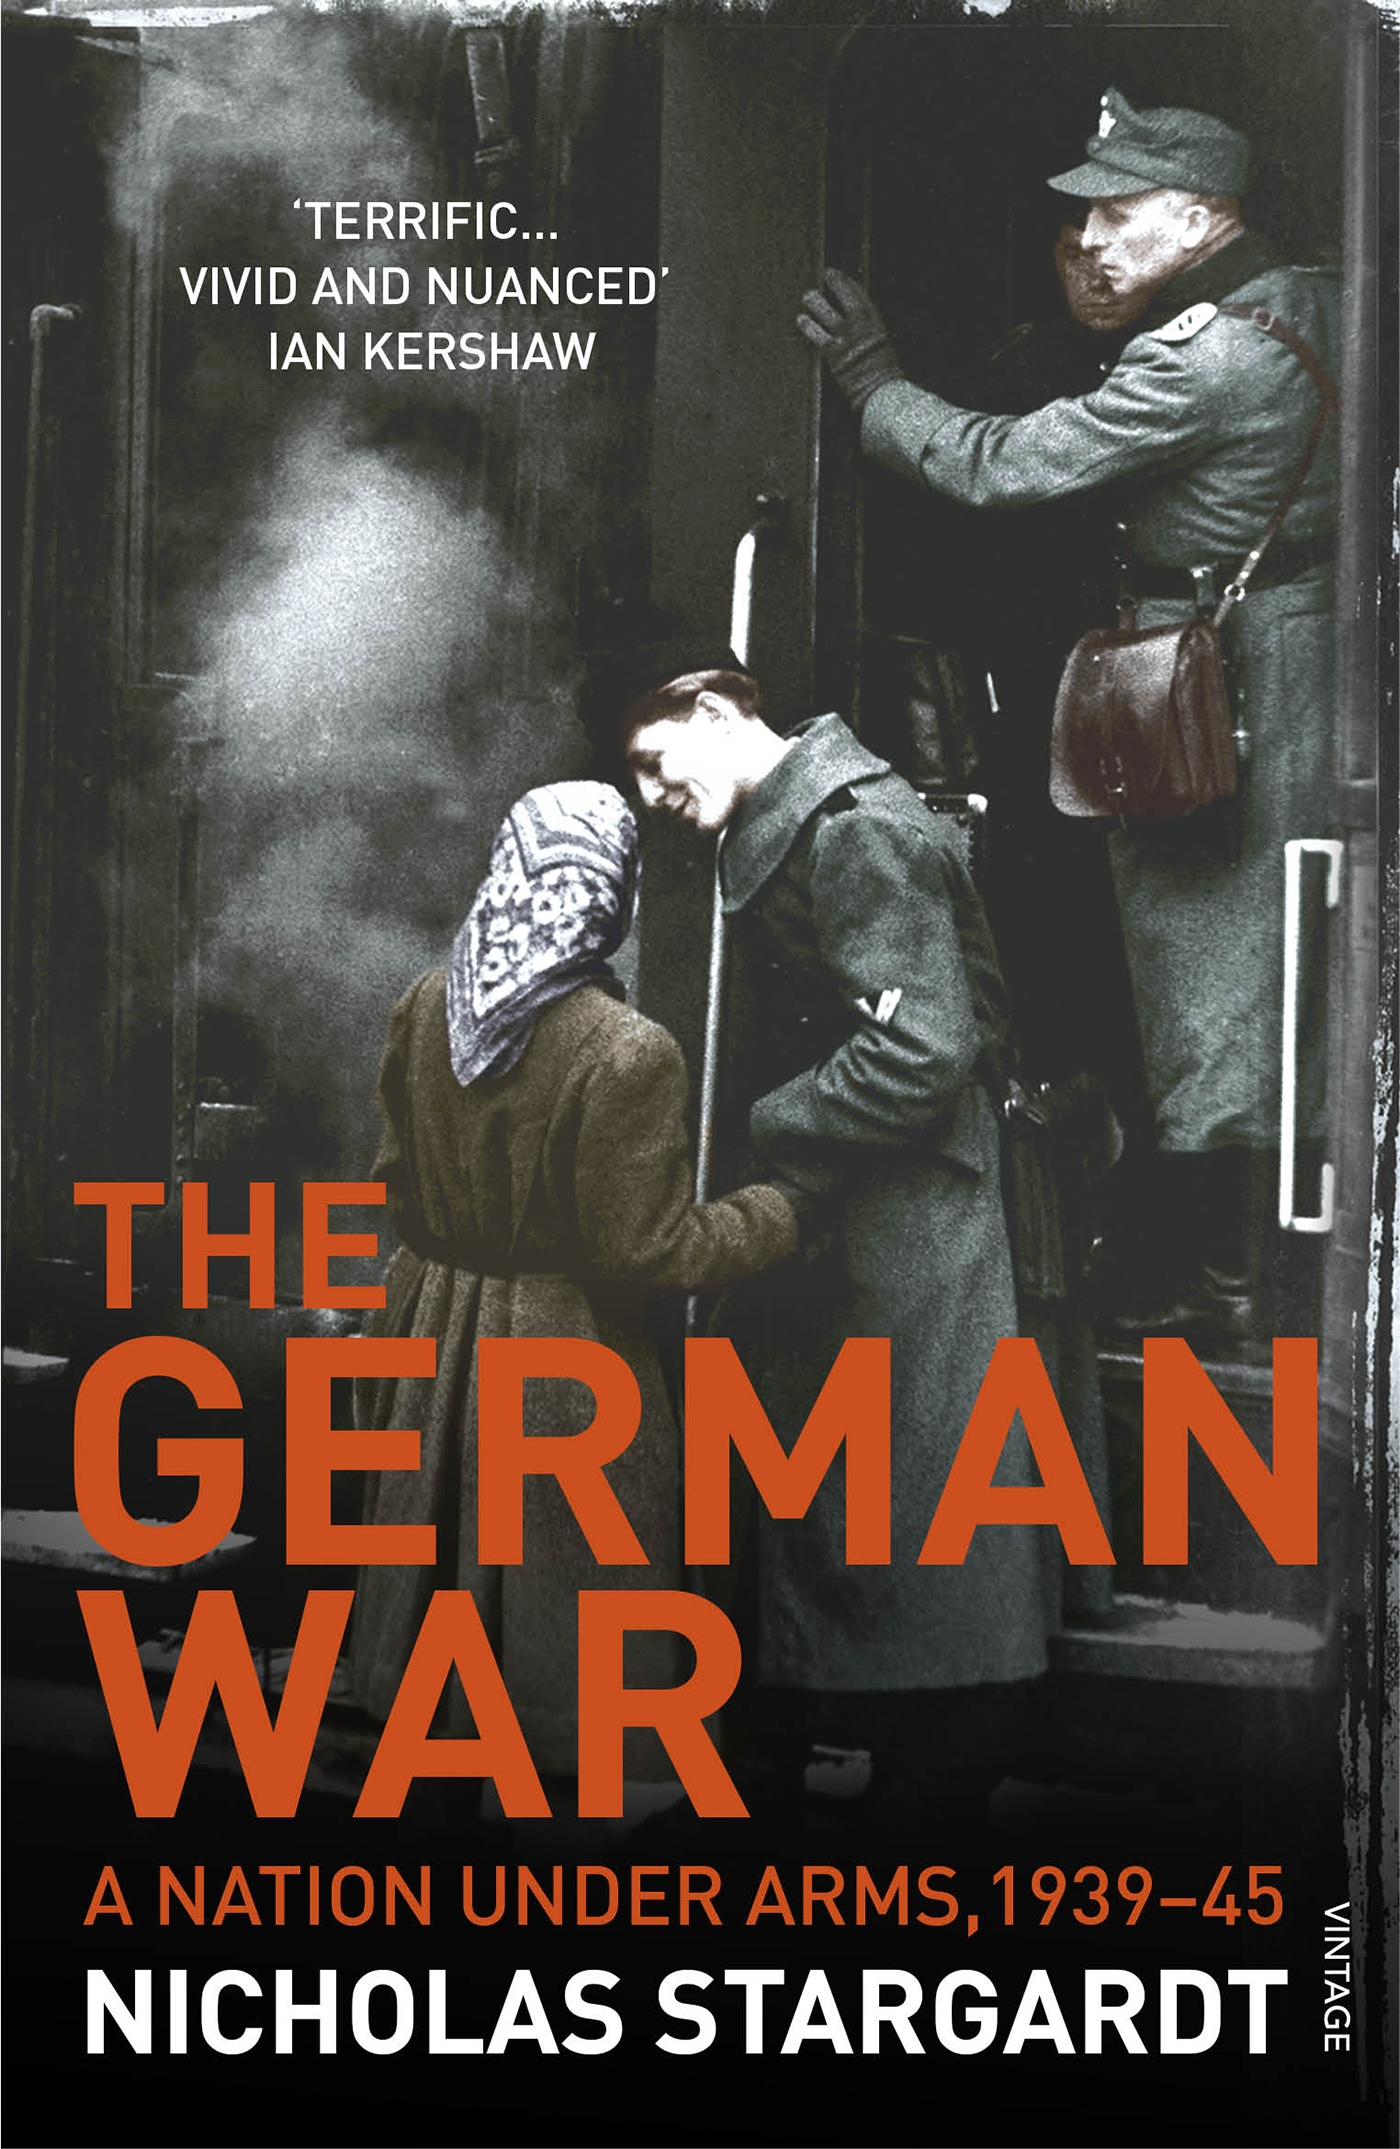 The German War: A Nation Under Arms, 1939-45 by Nicholas Stargardt, ISBN: 9780099539872